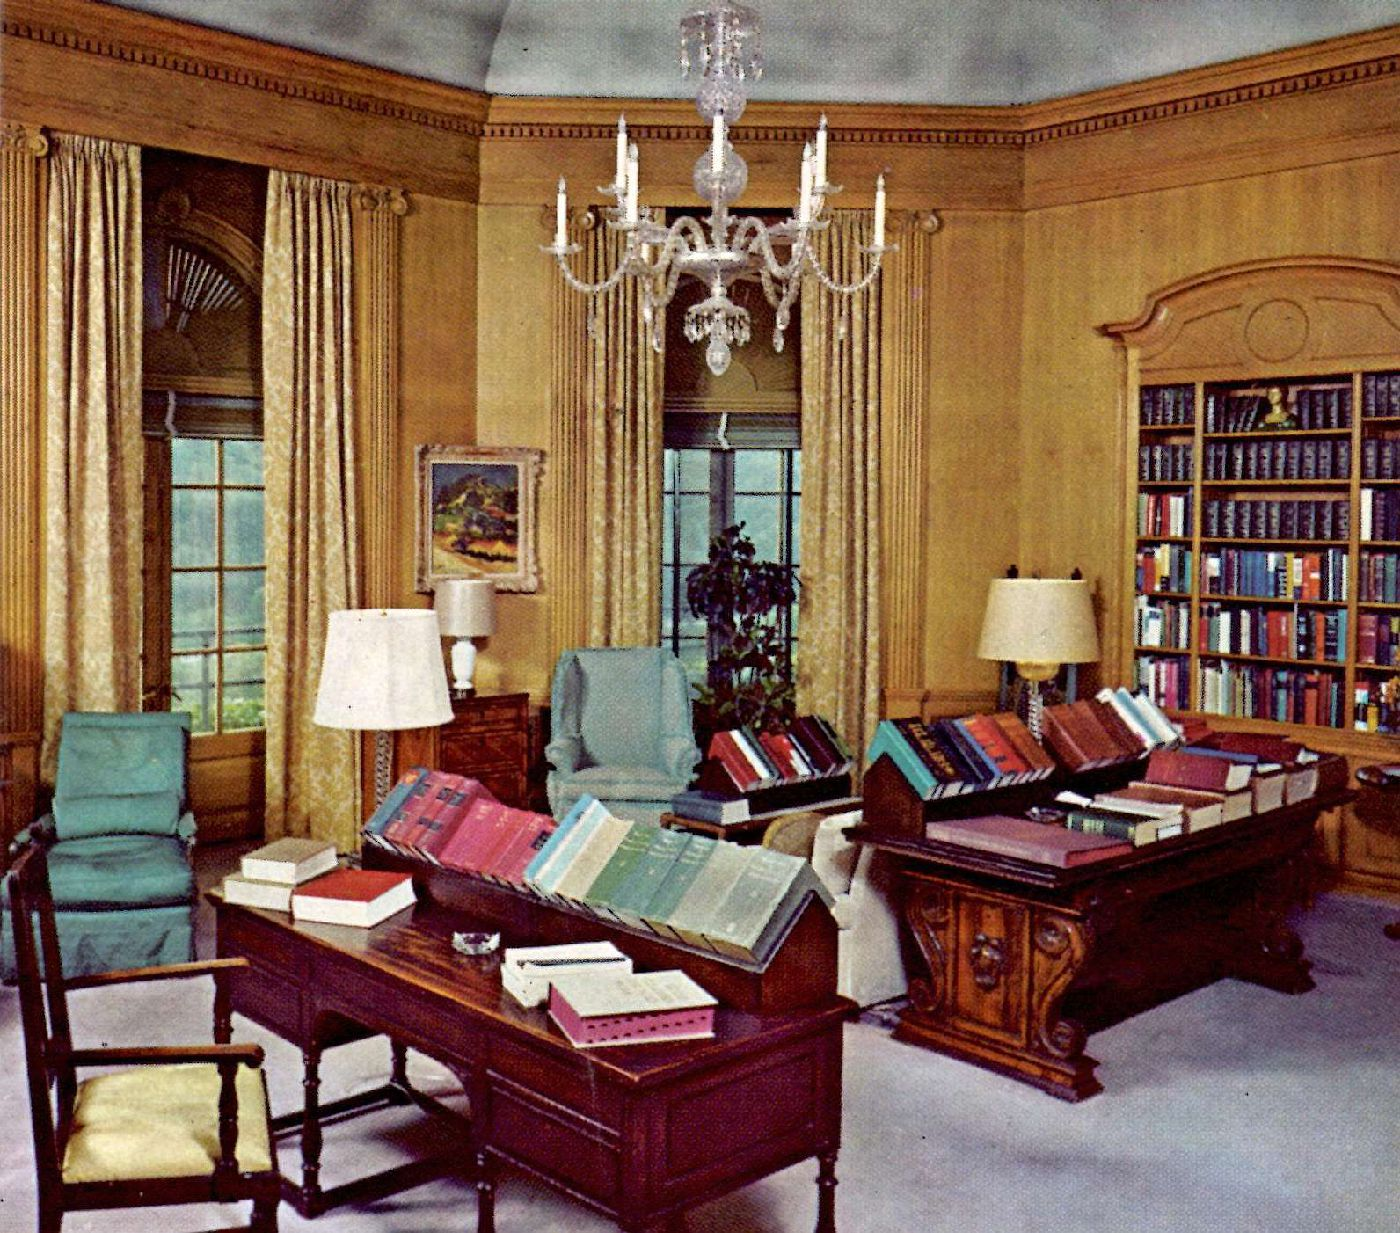 Editorial library at Reader's Digest headquarters, Chappaqua, 1977